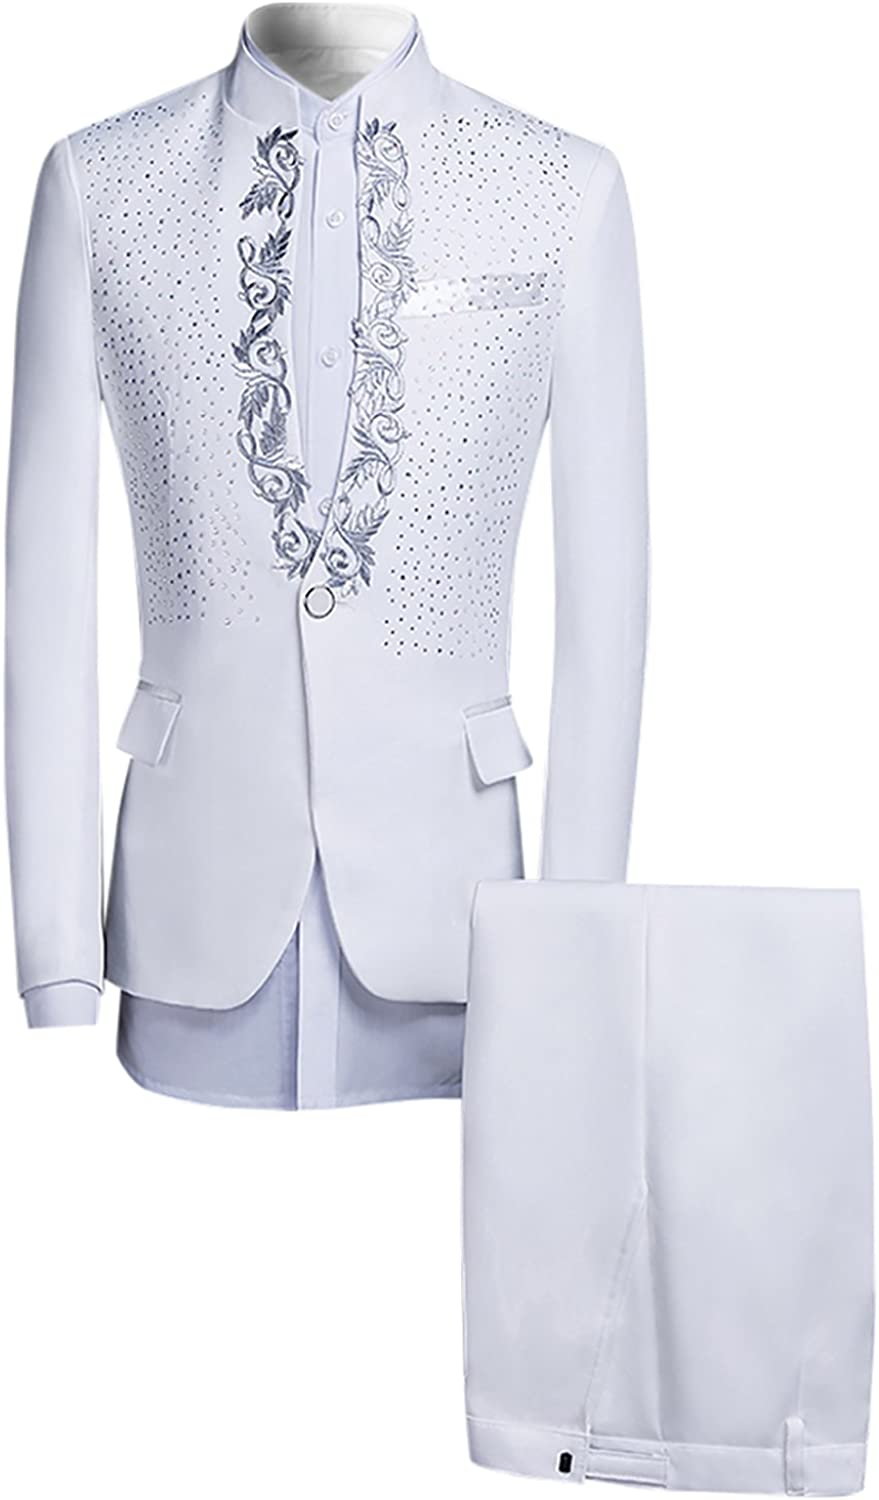 Mens Suits 2-Piece One Button Sequin & Floral Blazer Dinner Jacket and Pants